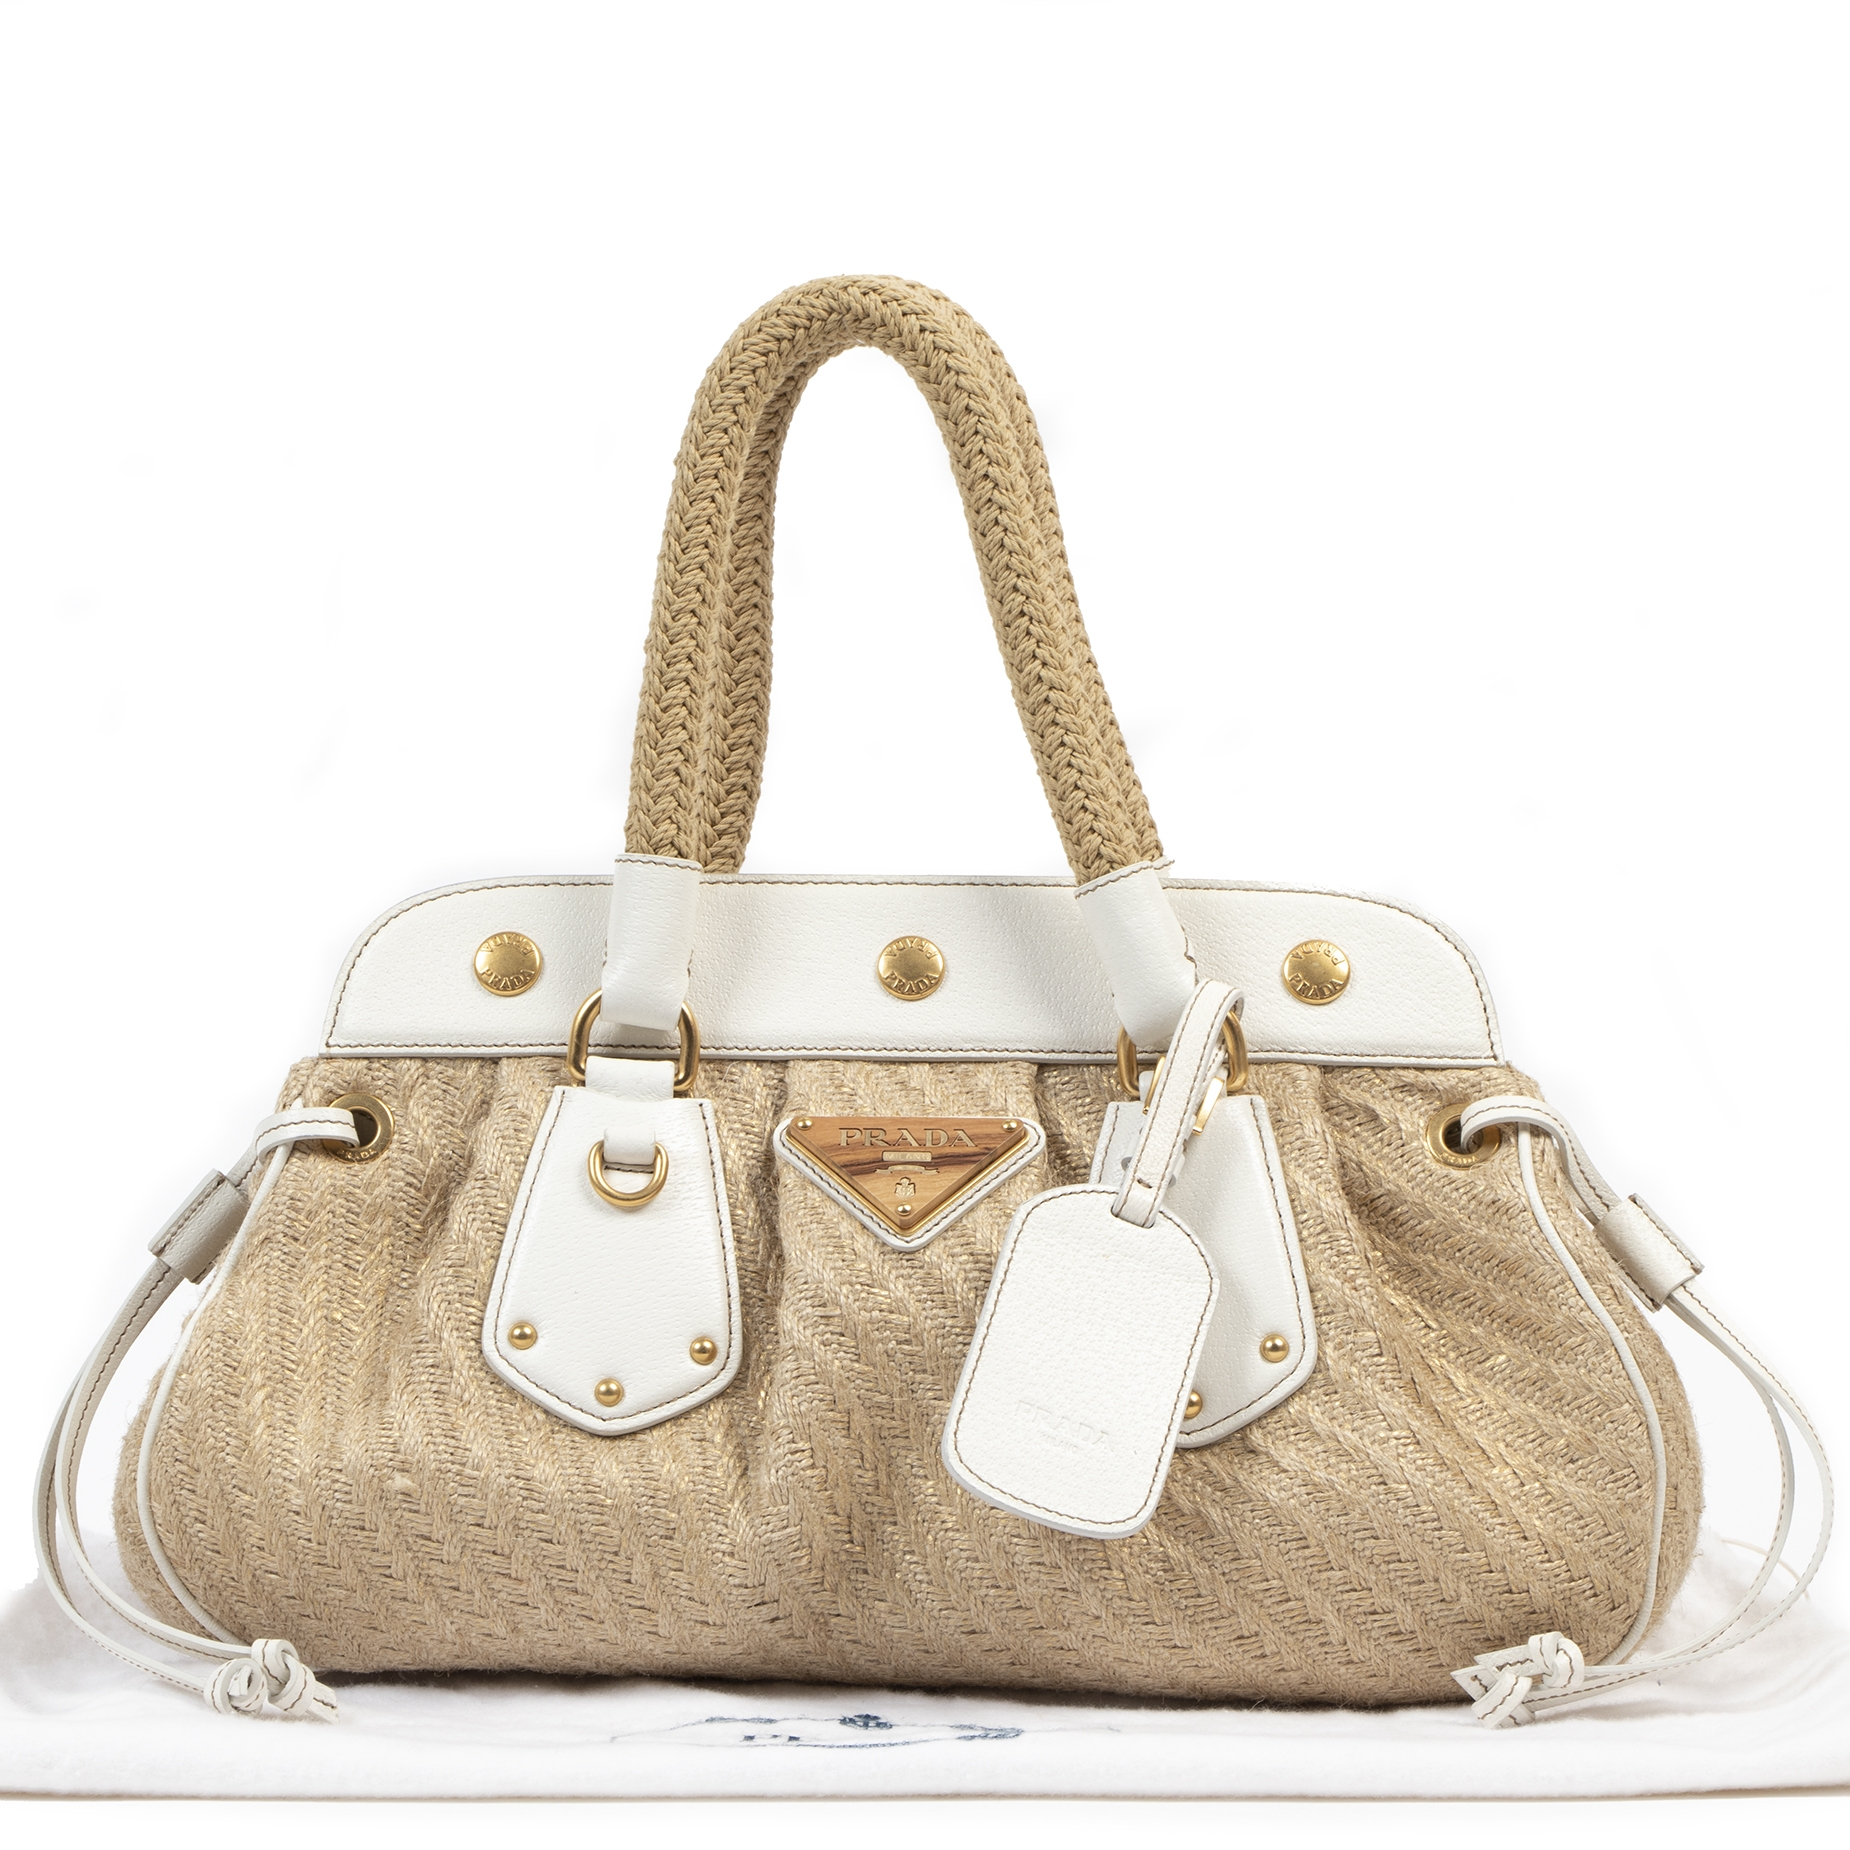 Authentic secondhand Prada Jute Frame Beige Satchel Bag luxury vintage webshop fashion safe secure online shopping